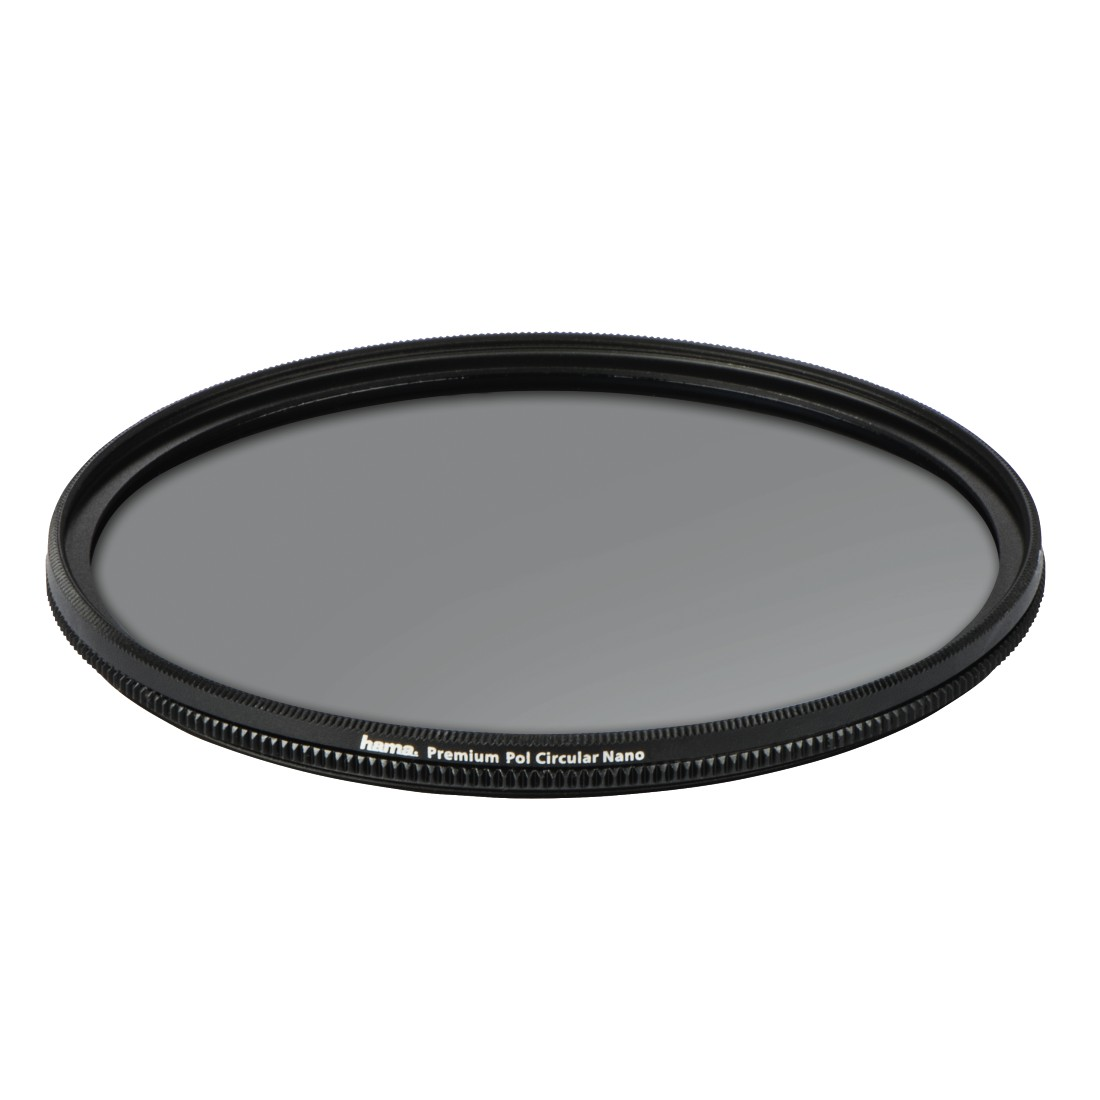 "abx High-Res Image - Hama, ""Premium"" Polar Filter, Cir., 55 mm width, Nano, Super-coated: 18 layers"